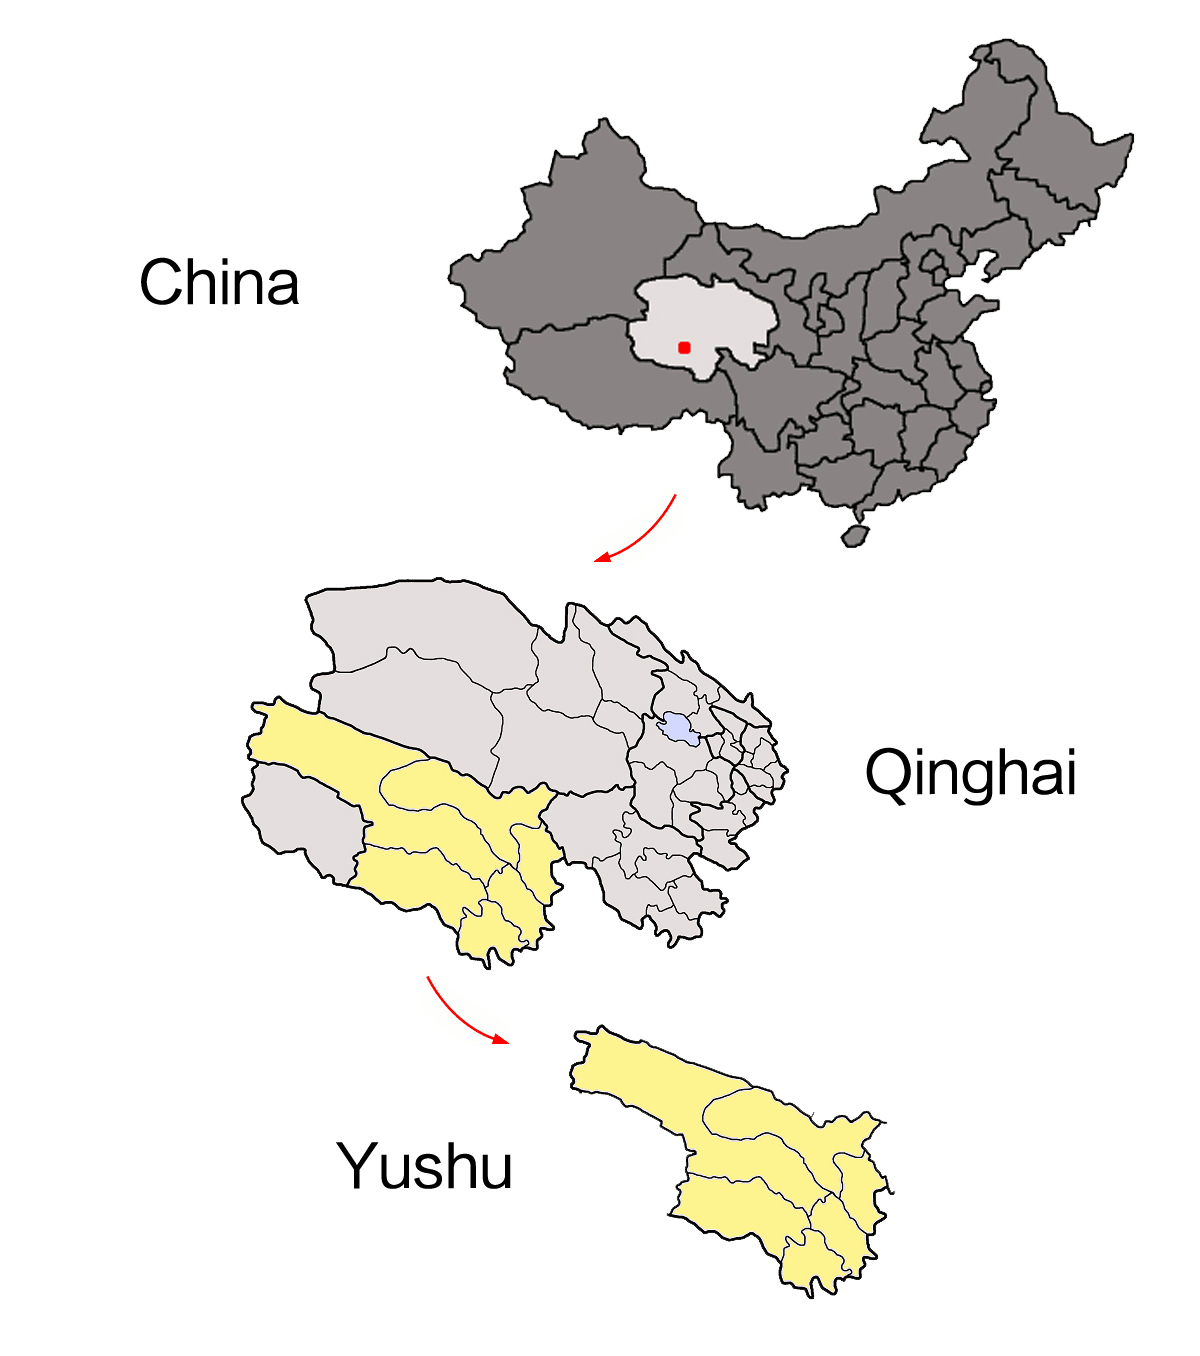 China Qinghai Yushu map